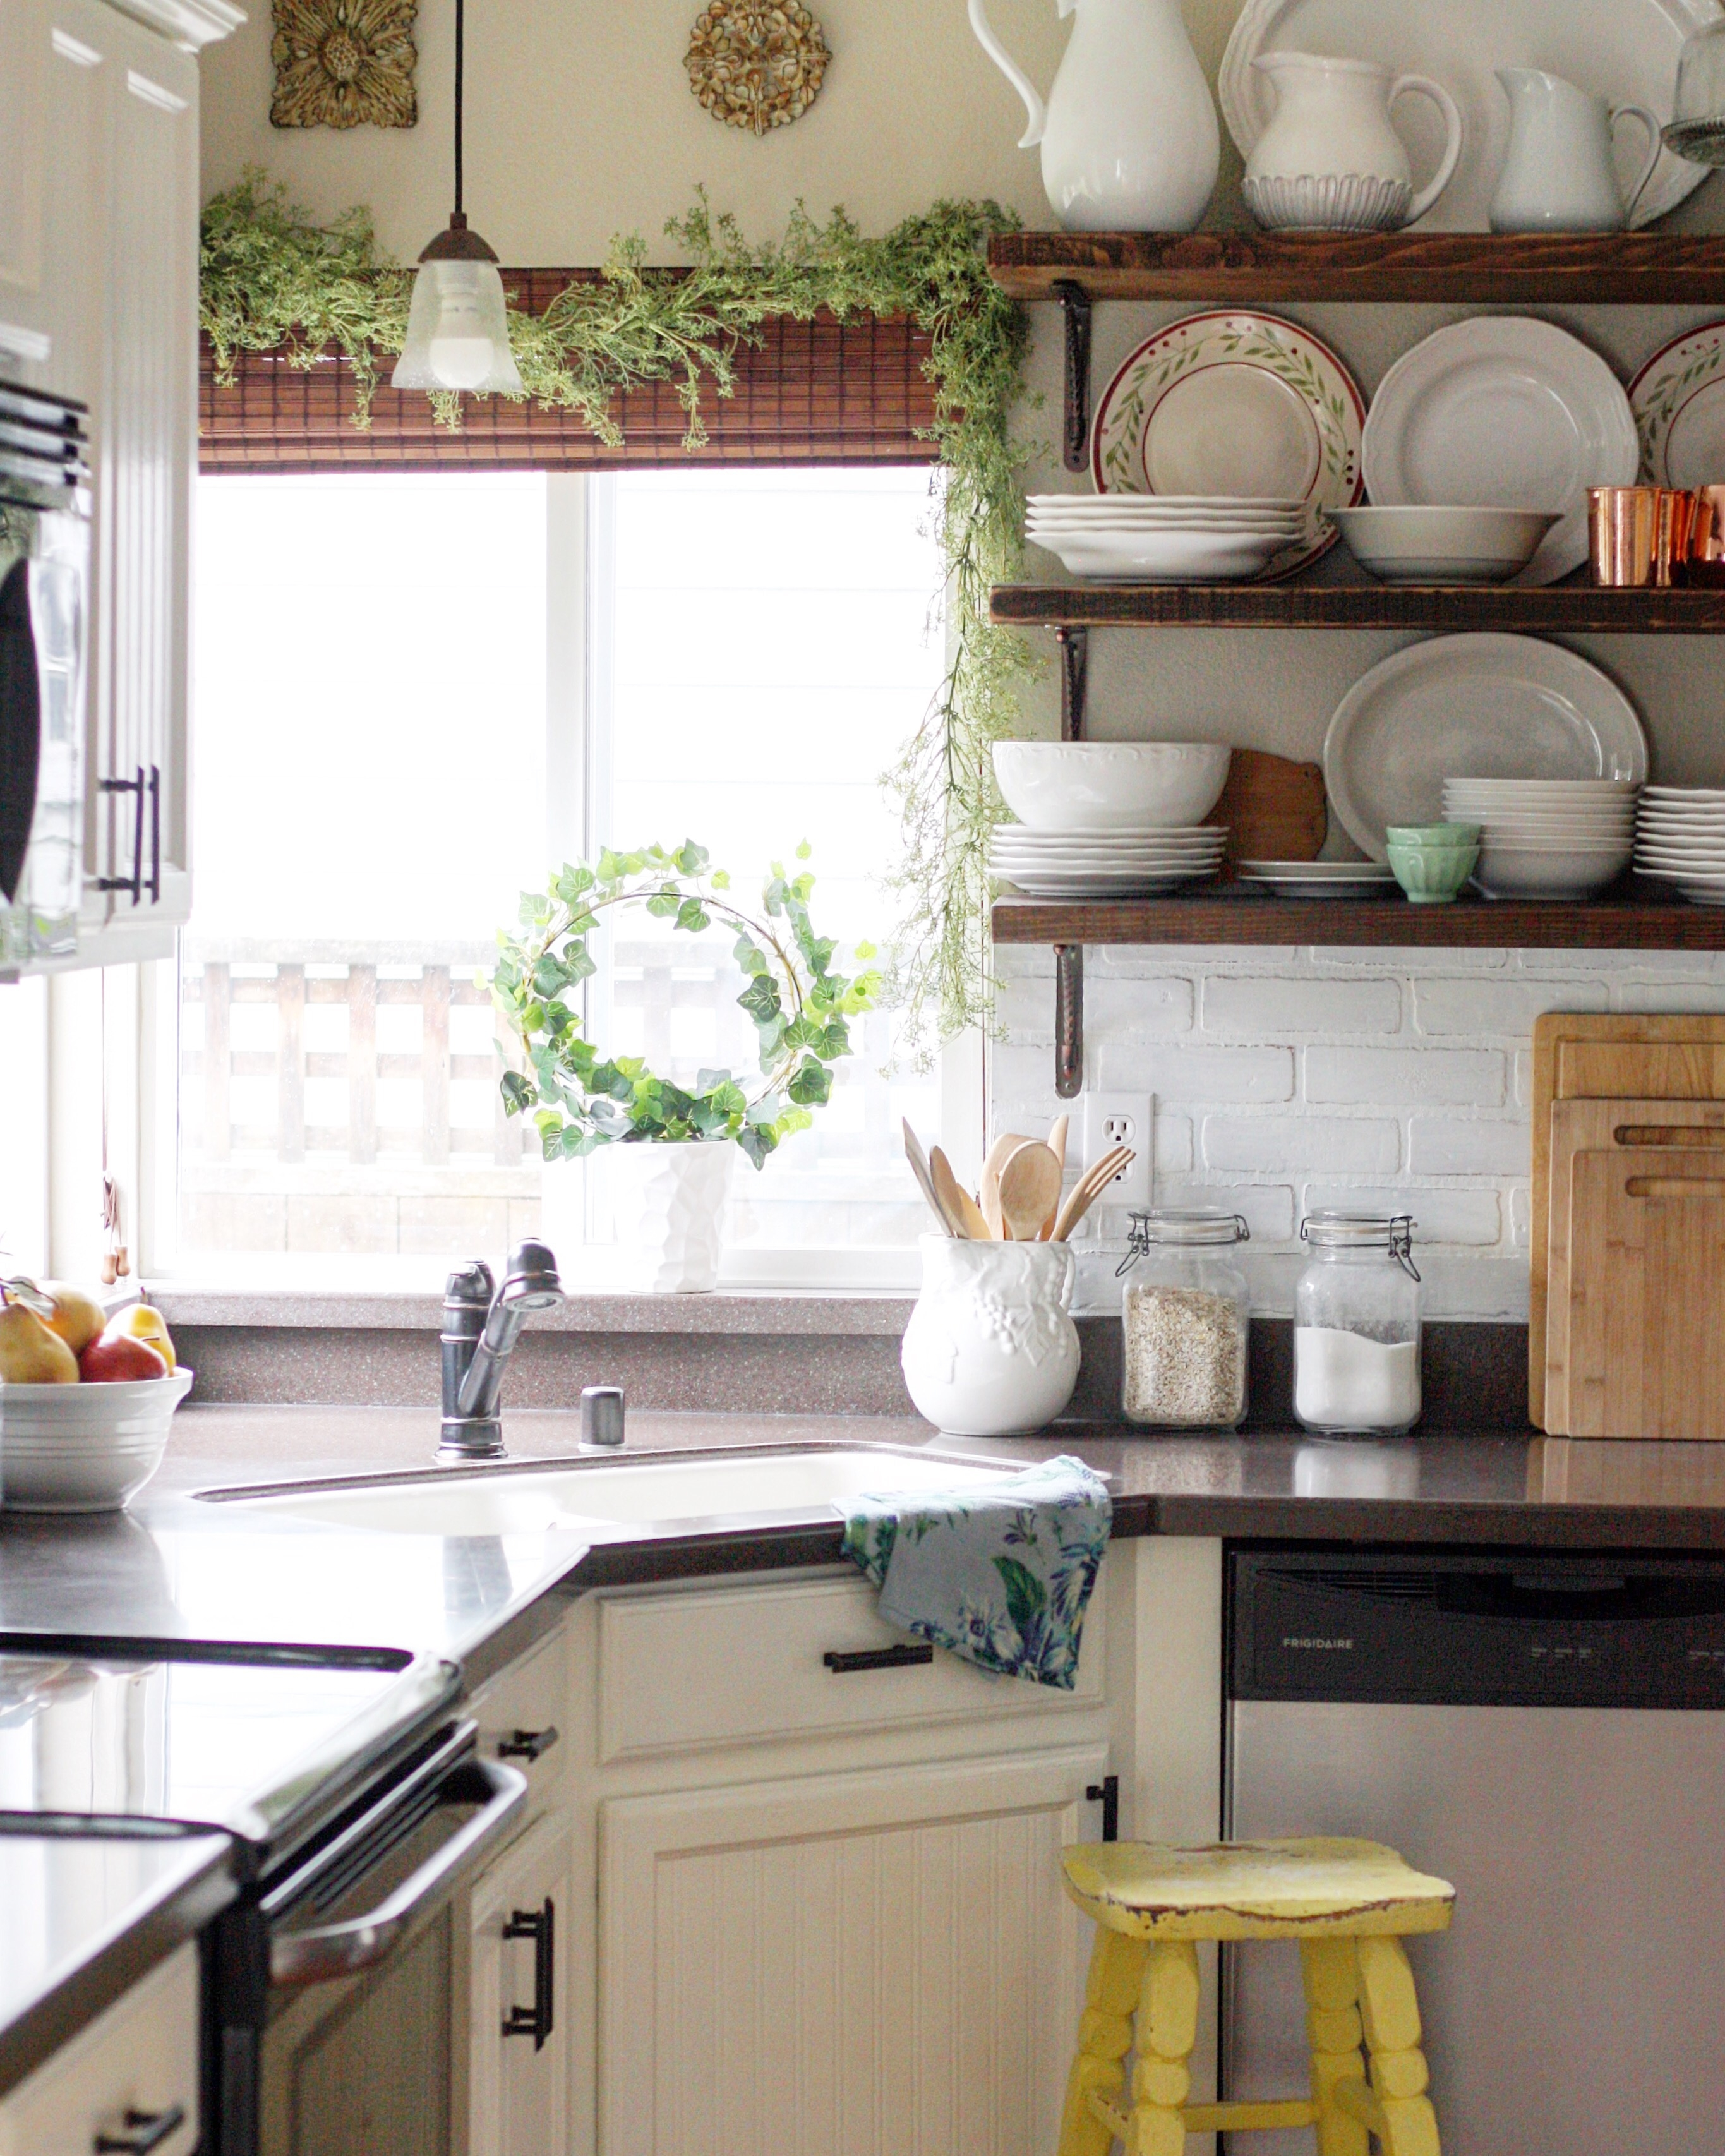 Simple Diy Ideas To Maximize Space And Style In Our Small Kitchen